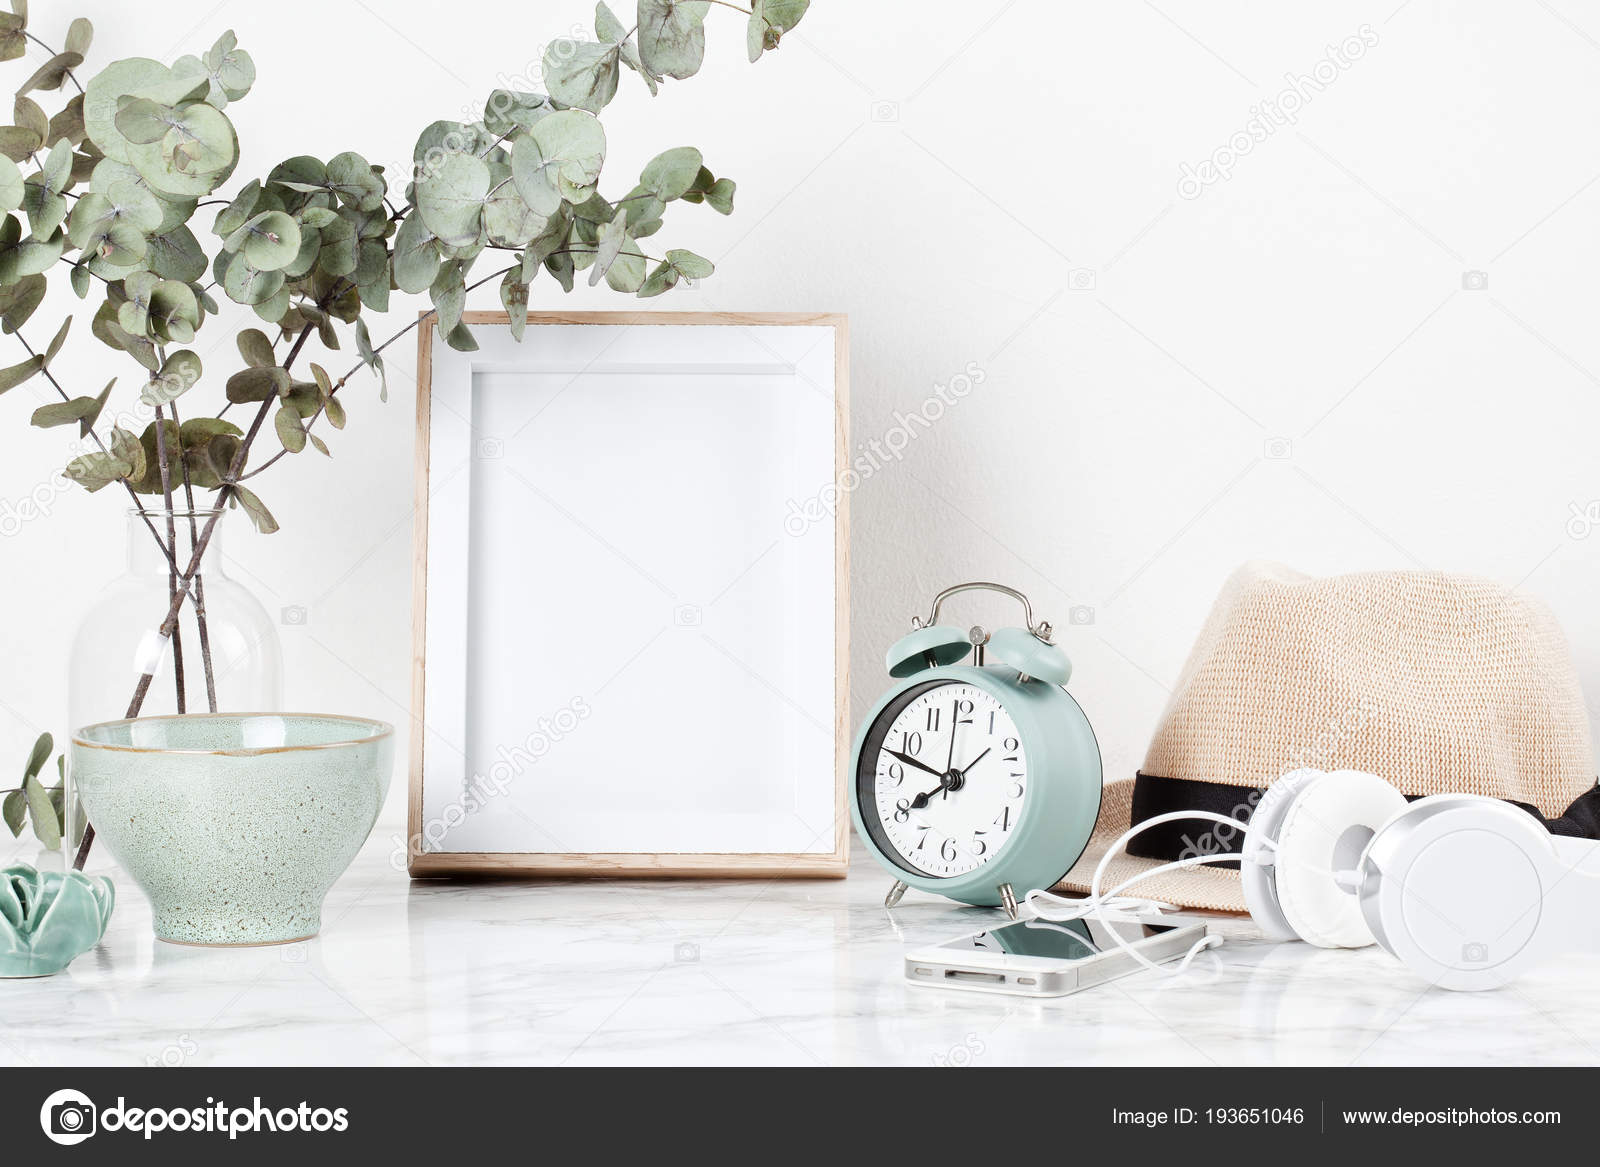 poster frame mockup front view decor elements flowers blank copy